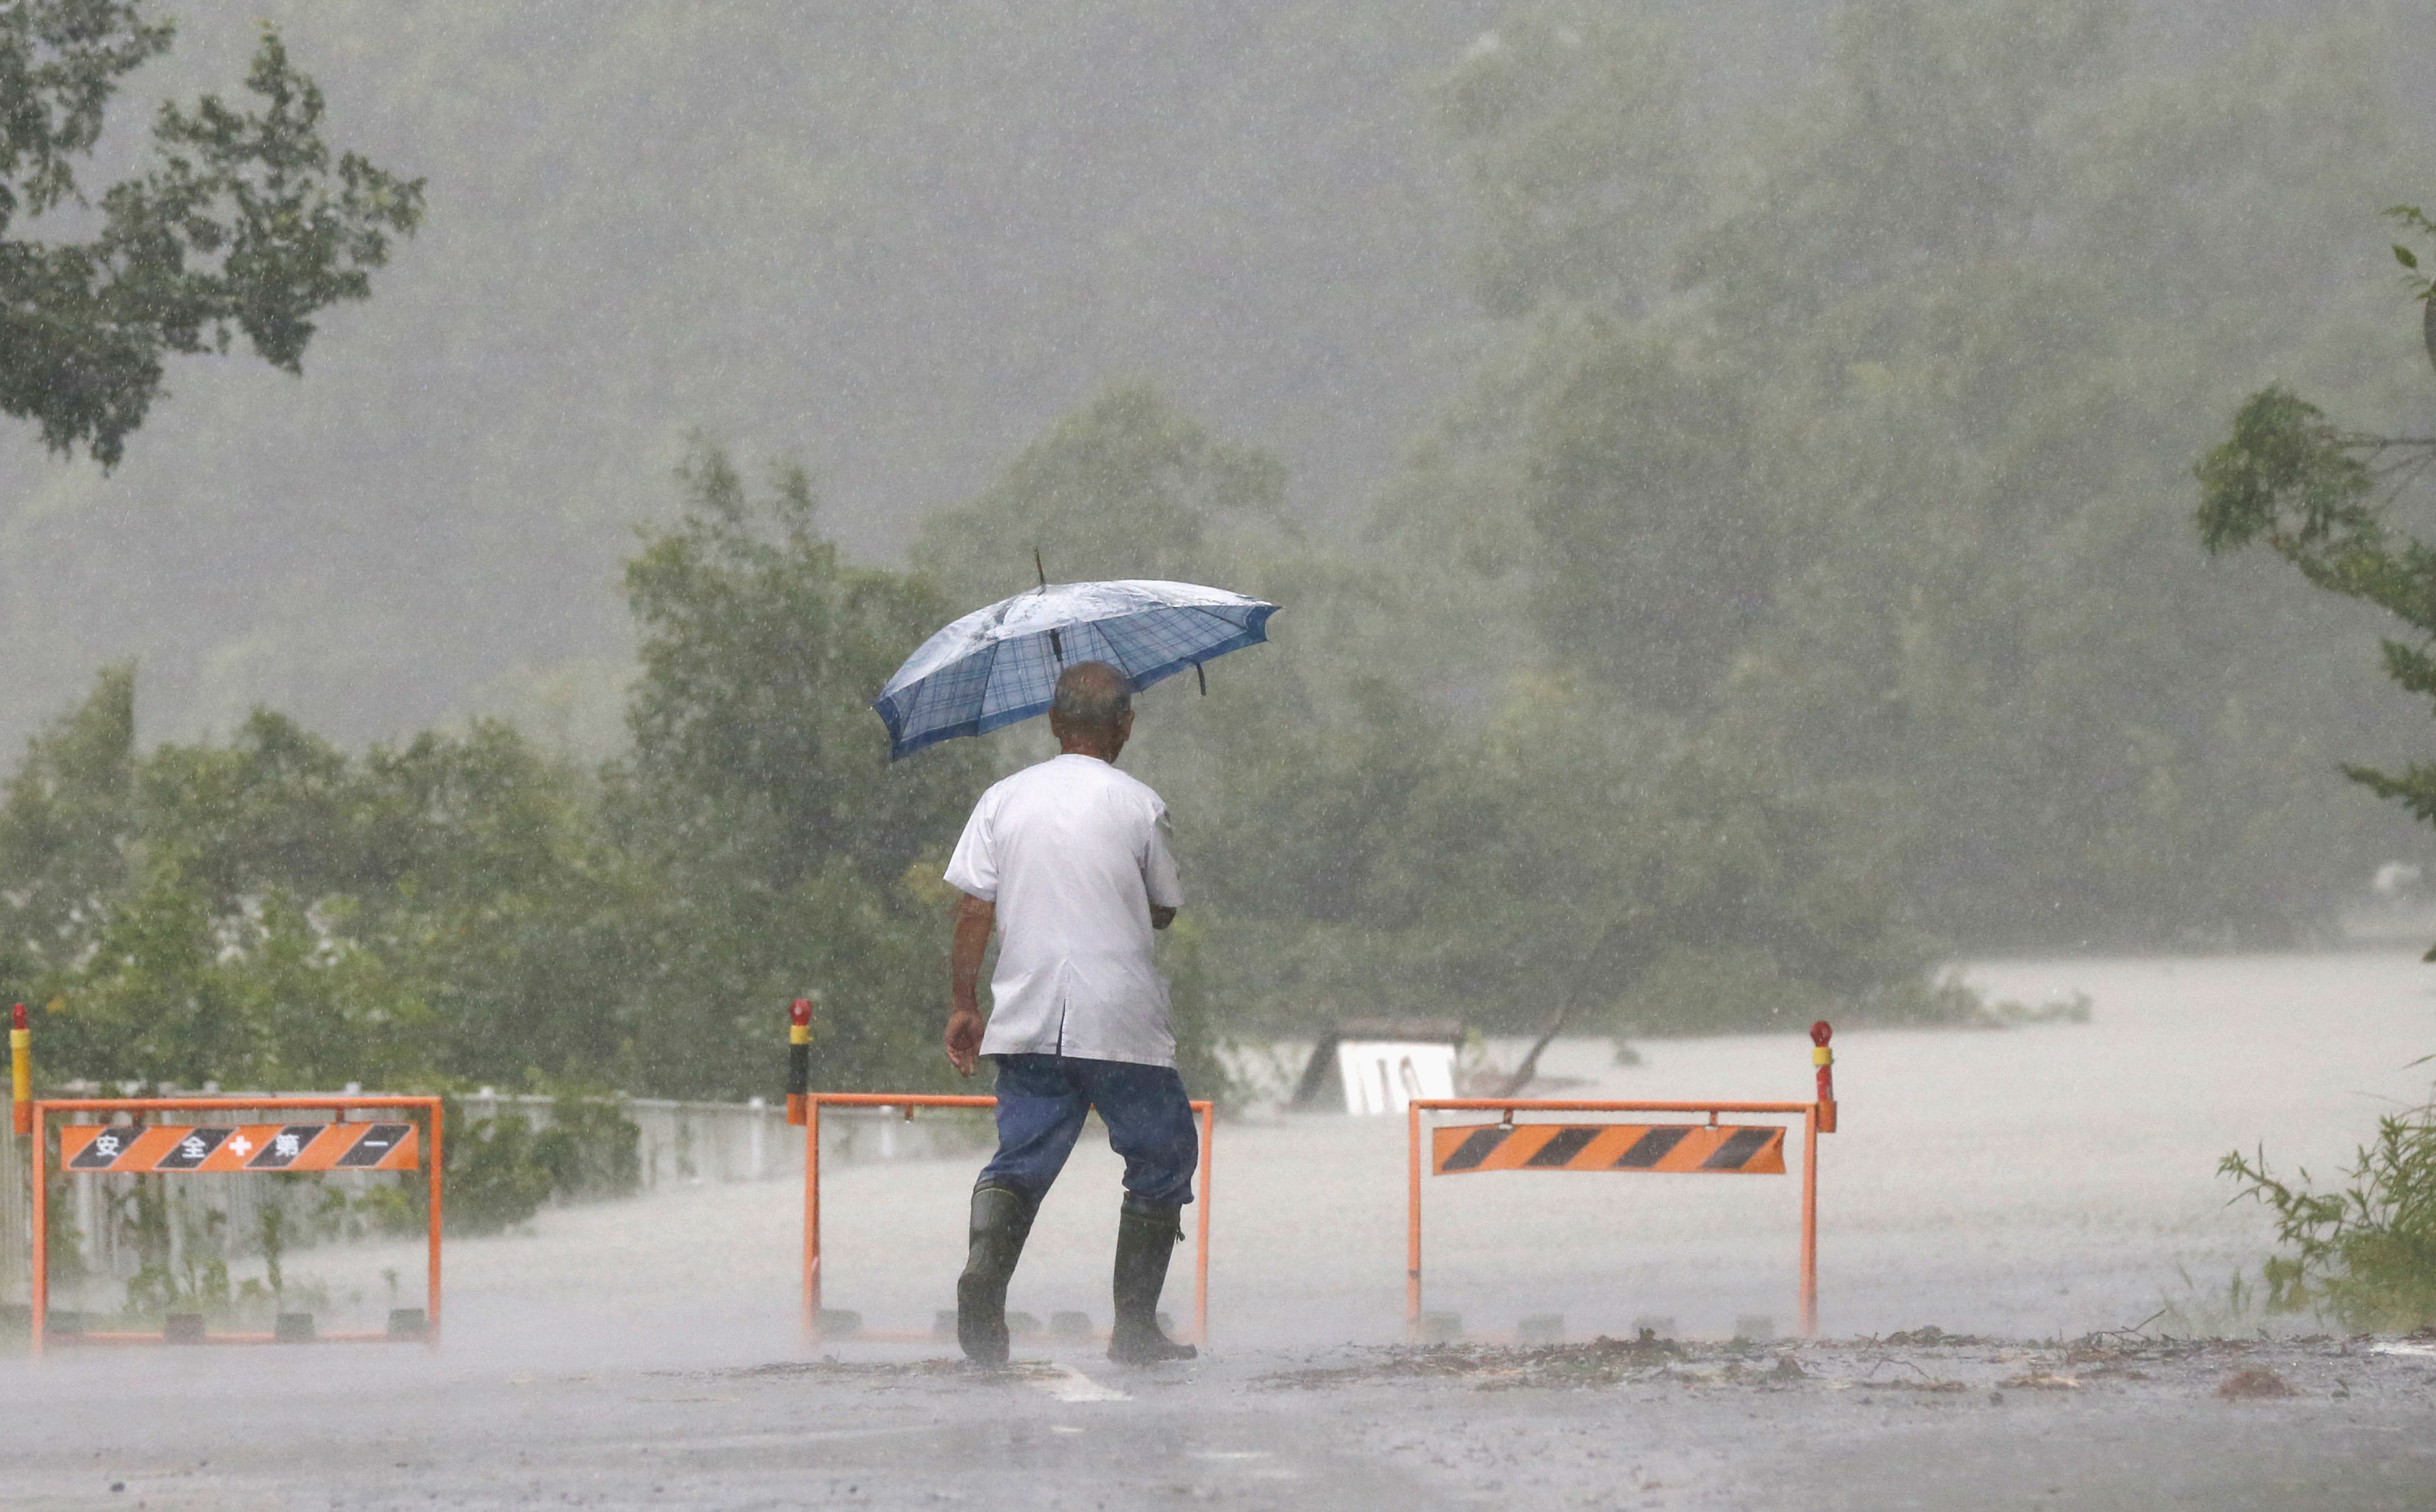 A road in the western Japanese city of Shingu is submerged by water due to an overflowing river on the morning of July 17, 2015, after Typhoon Nangka made landfall in the area the previous day